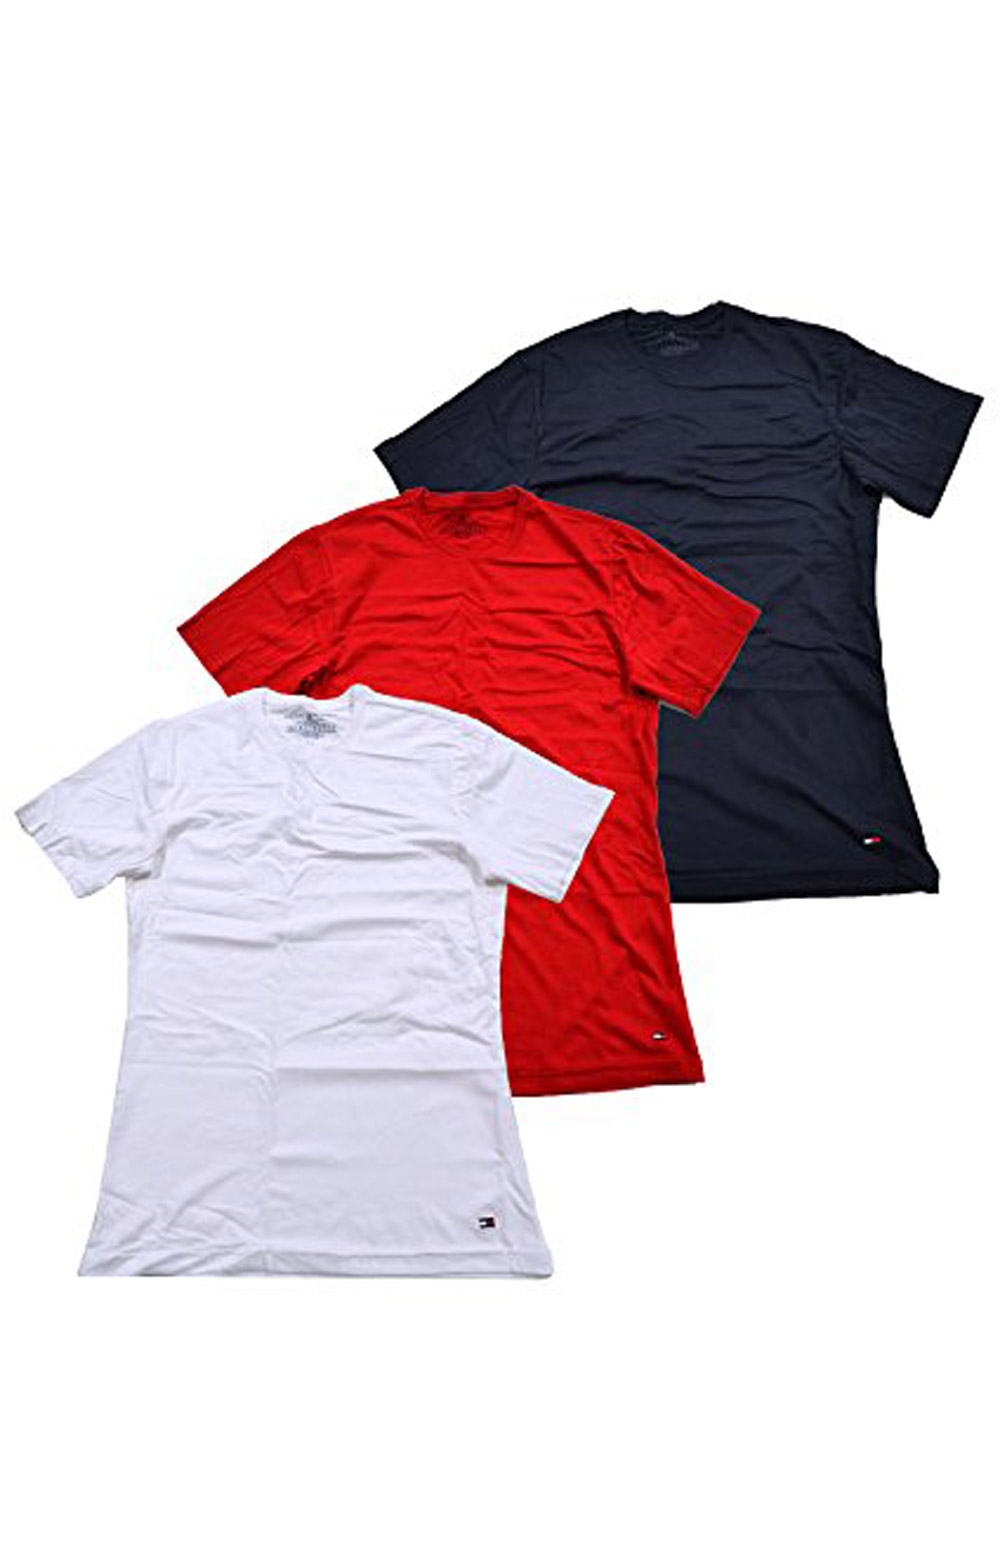 4b2a18c4 Tommy Hilfiger, 3 Pack Cotton Classic Crewneck T-Shirts - Red/White ...